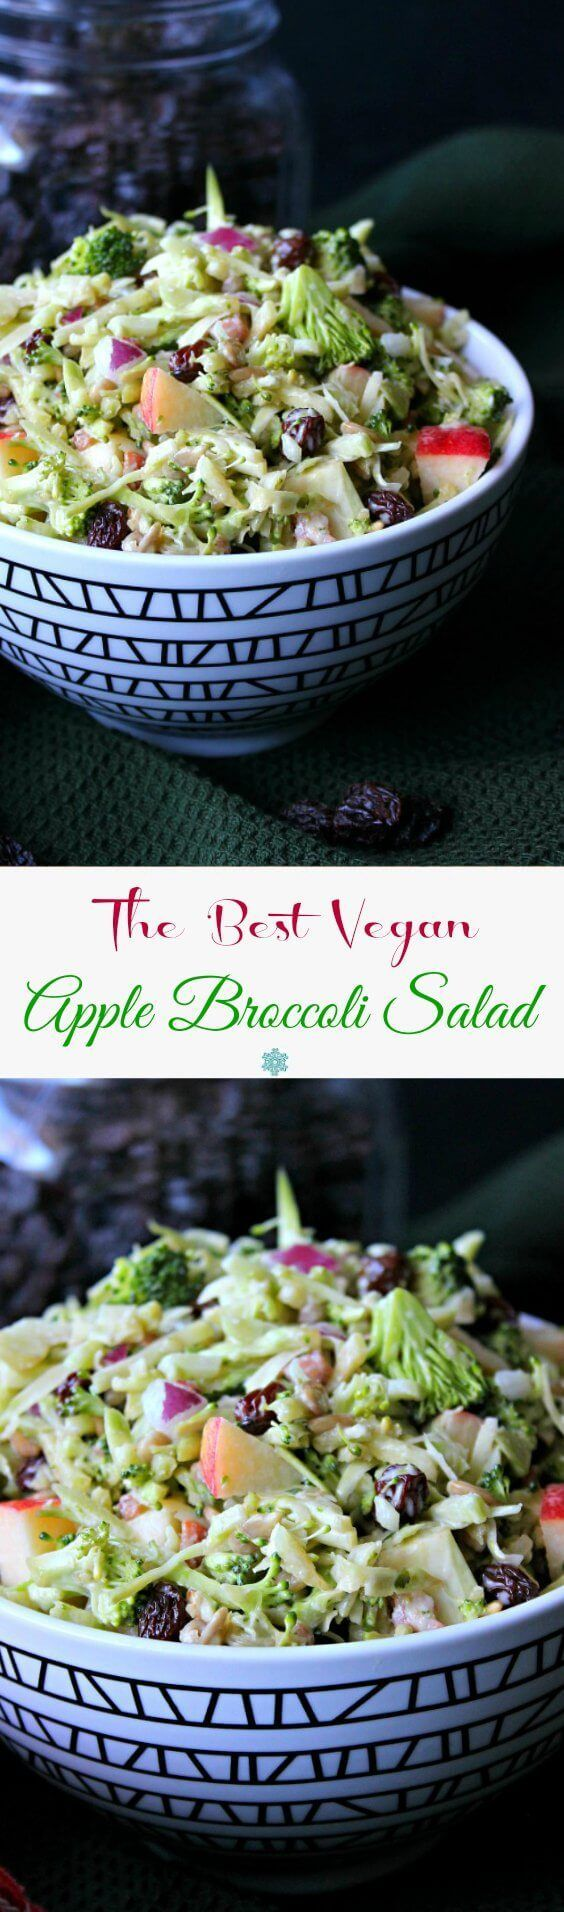 Vegan Apple Broccoli Salad has everyone's favorite vegetables and fruits. You throw everything in a bowl then pour on the slightly sweet and tangy dressing. Toss and eat! ~ http://veganinthefreezer.com